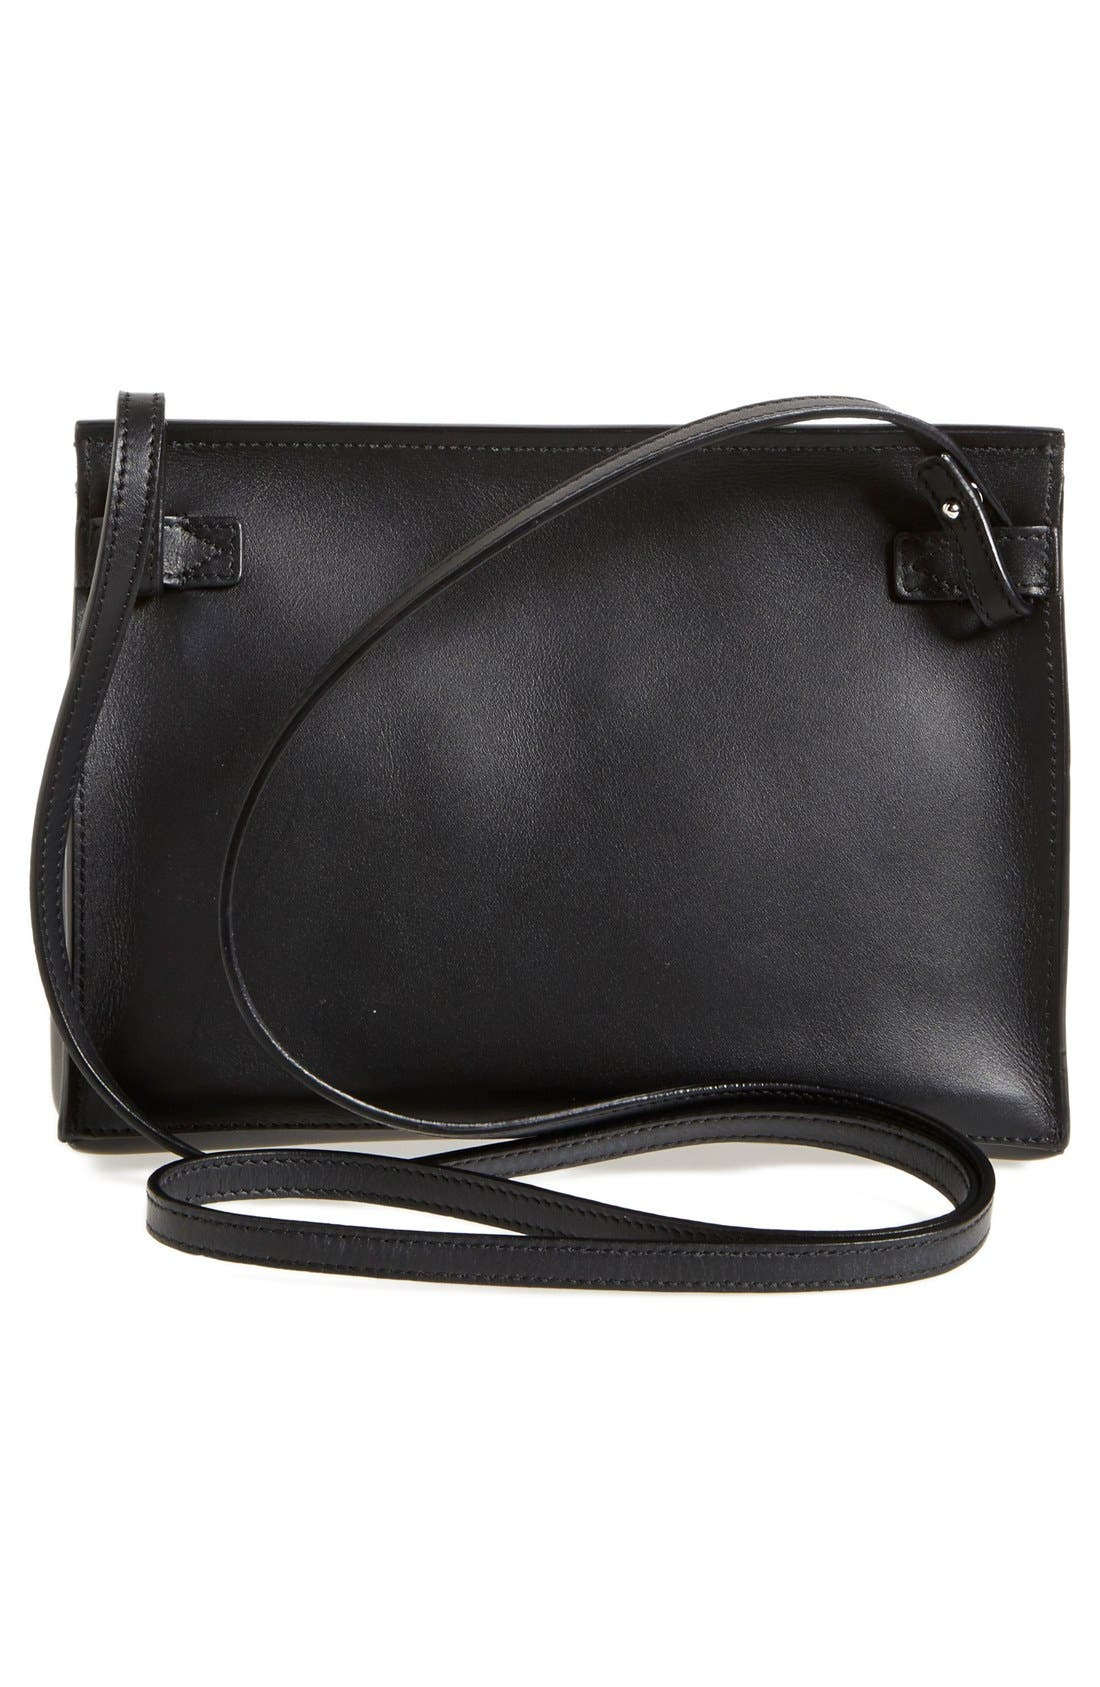 Alternate Image 2  - Vince 'Signature Collection - Small' Leather Crossbody Bag